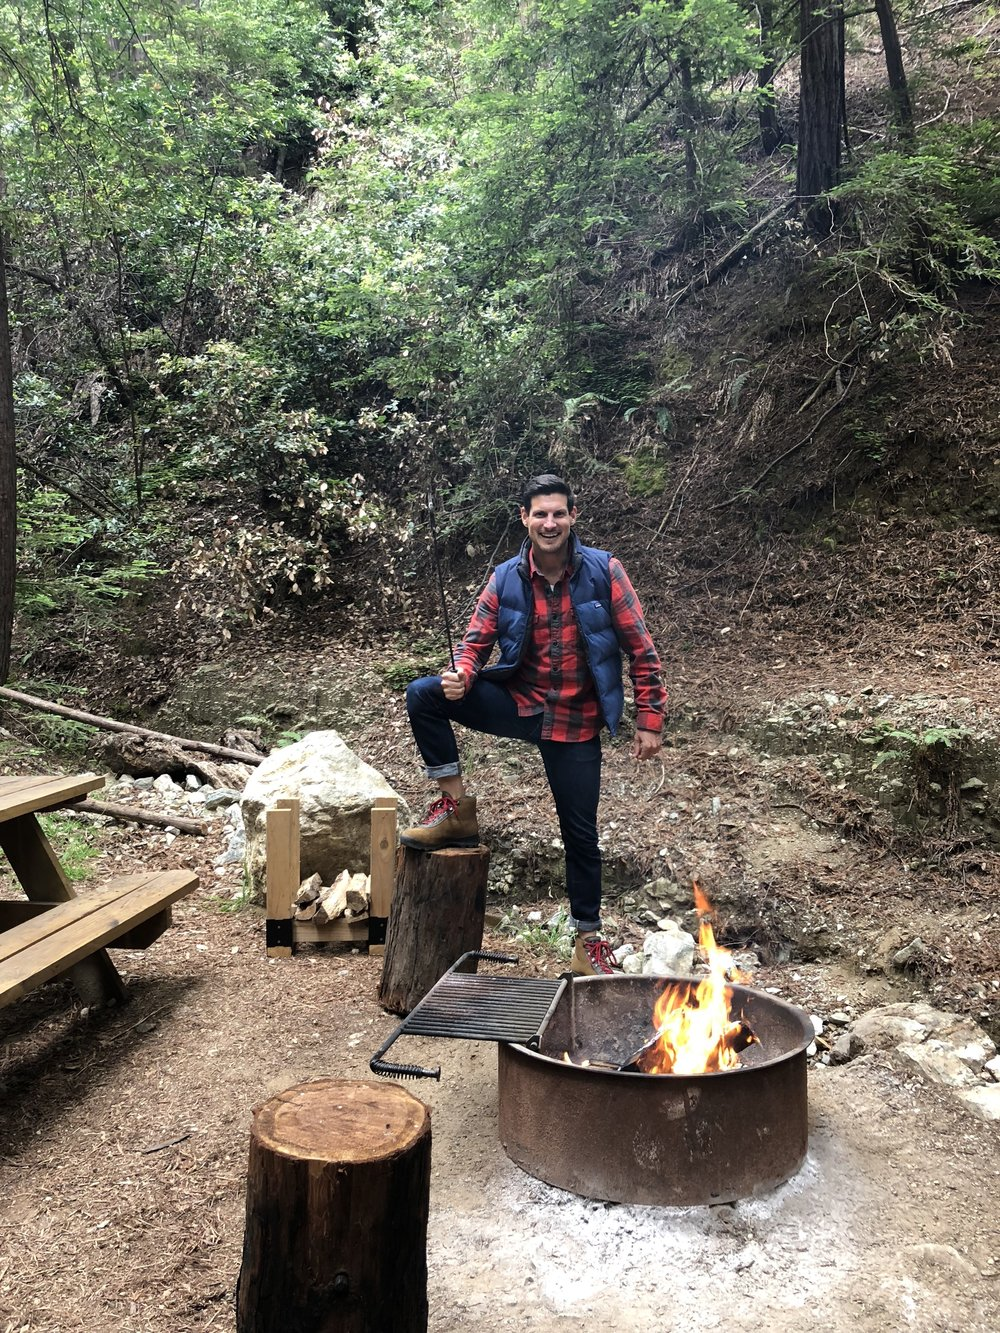 Daniel in his element, Glamping at Ventana, Big Sur.